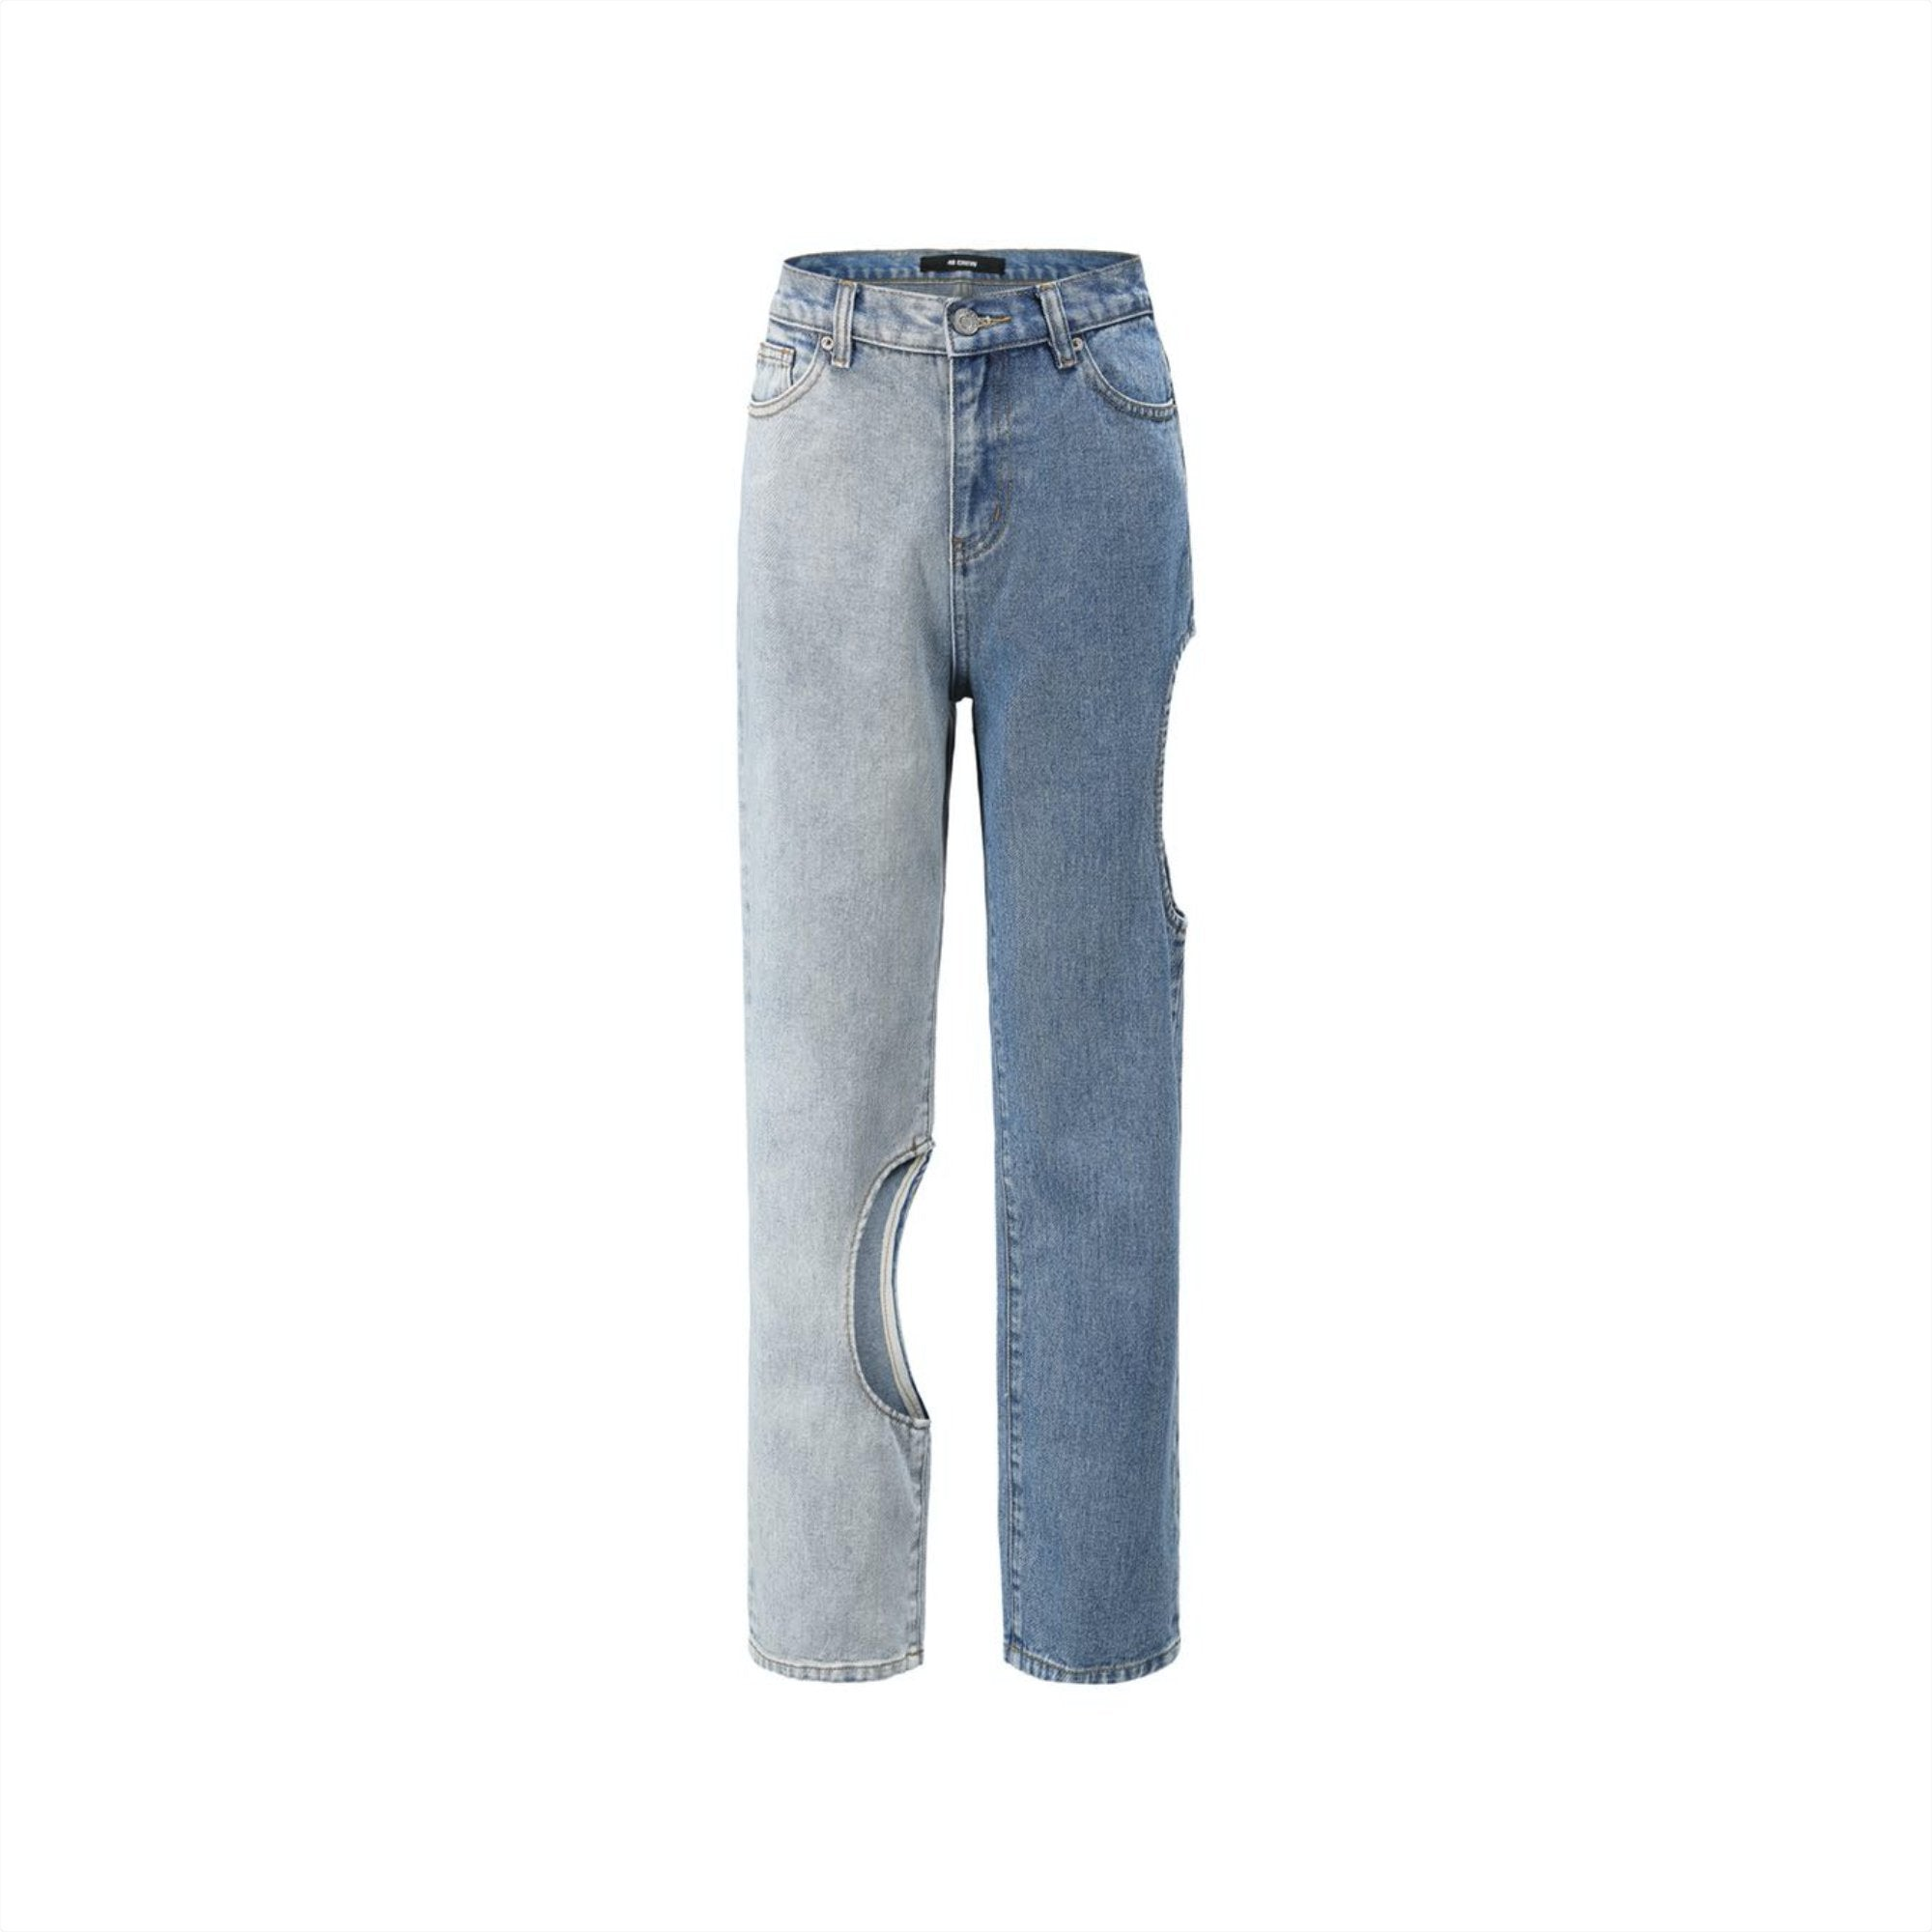 40 CREW Colorblock Cut-Out Jeans | MADA IN CHINA